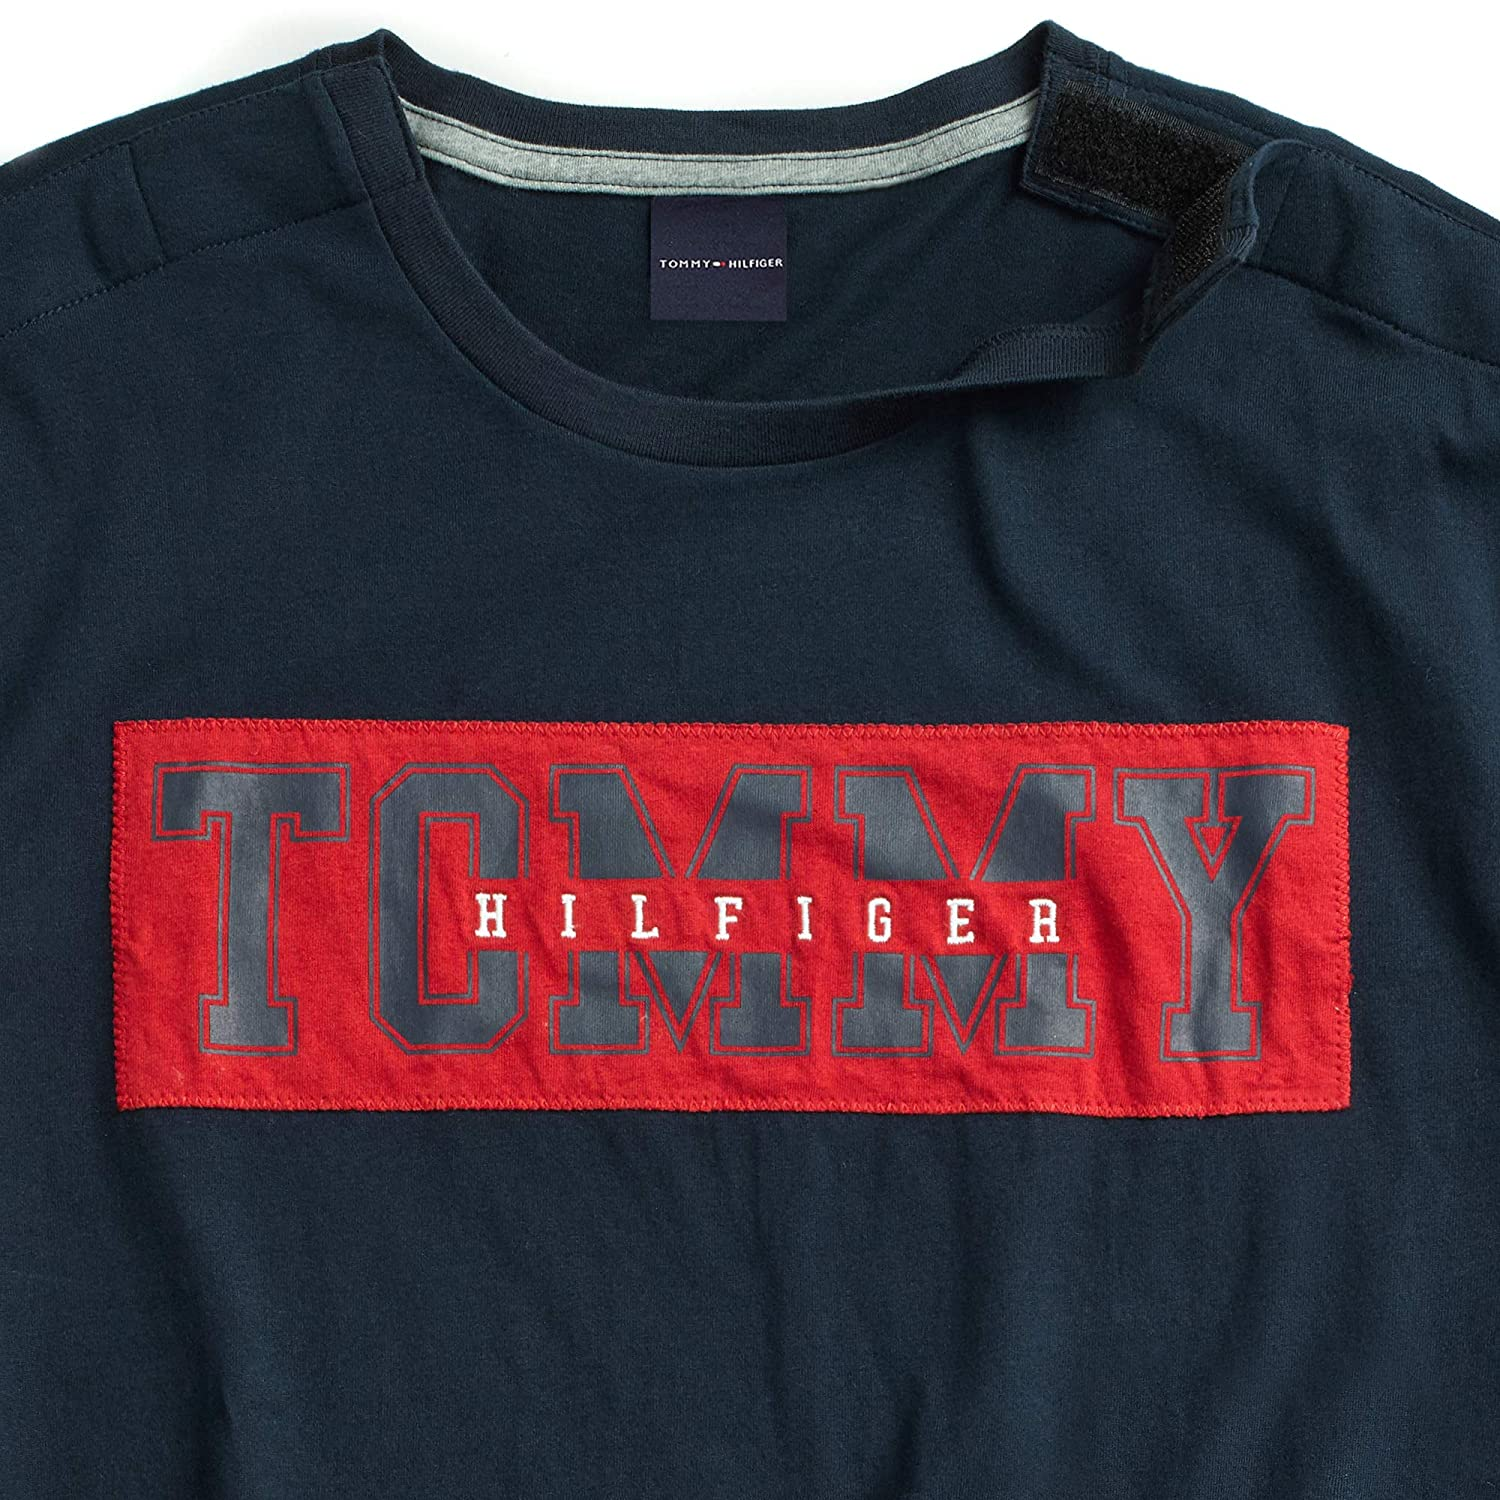 f375b32f Amazon.com: Tommy Hilfiger Men's Adaptive T Shirt with Adjustable Shoulder  Closure: Clothing